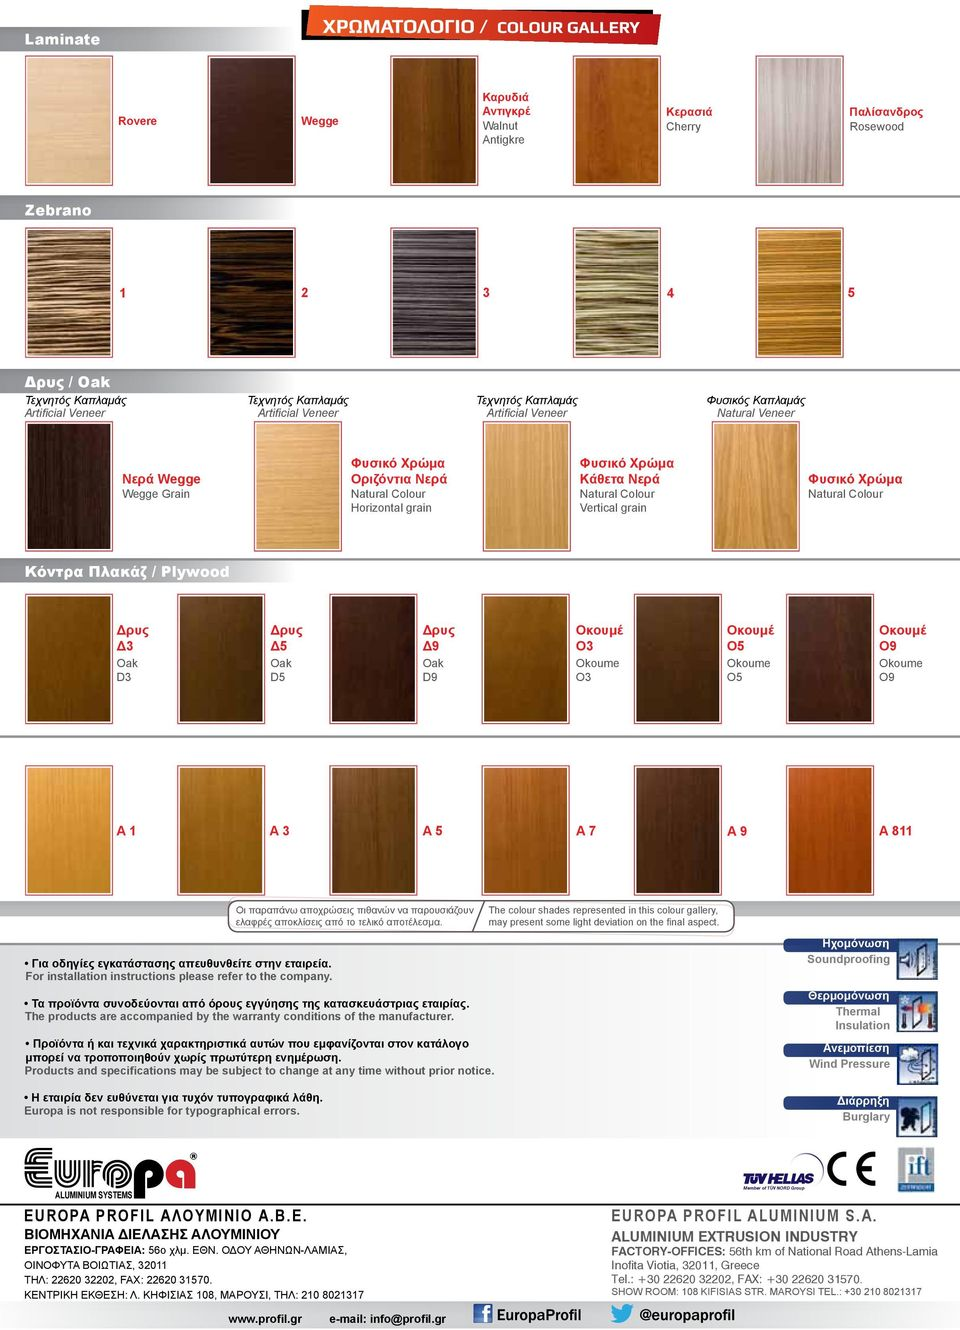 Vertical grain Φυσικό Χρώμα Natural Colour Κόντρα Πλακάζ / Plywood Δρυς Δ3 Oak D3 Δρυς Δ5 Oak D5 Δρυς Δ9 Oak D9 Οκουμέ Ο3 Okoume O3 Οκουμέ Ο5 Okoume O5 Οκουμέ Ο9 Okoume O9 A 1 A 3 A 5 A 7 A 9 A 811